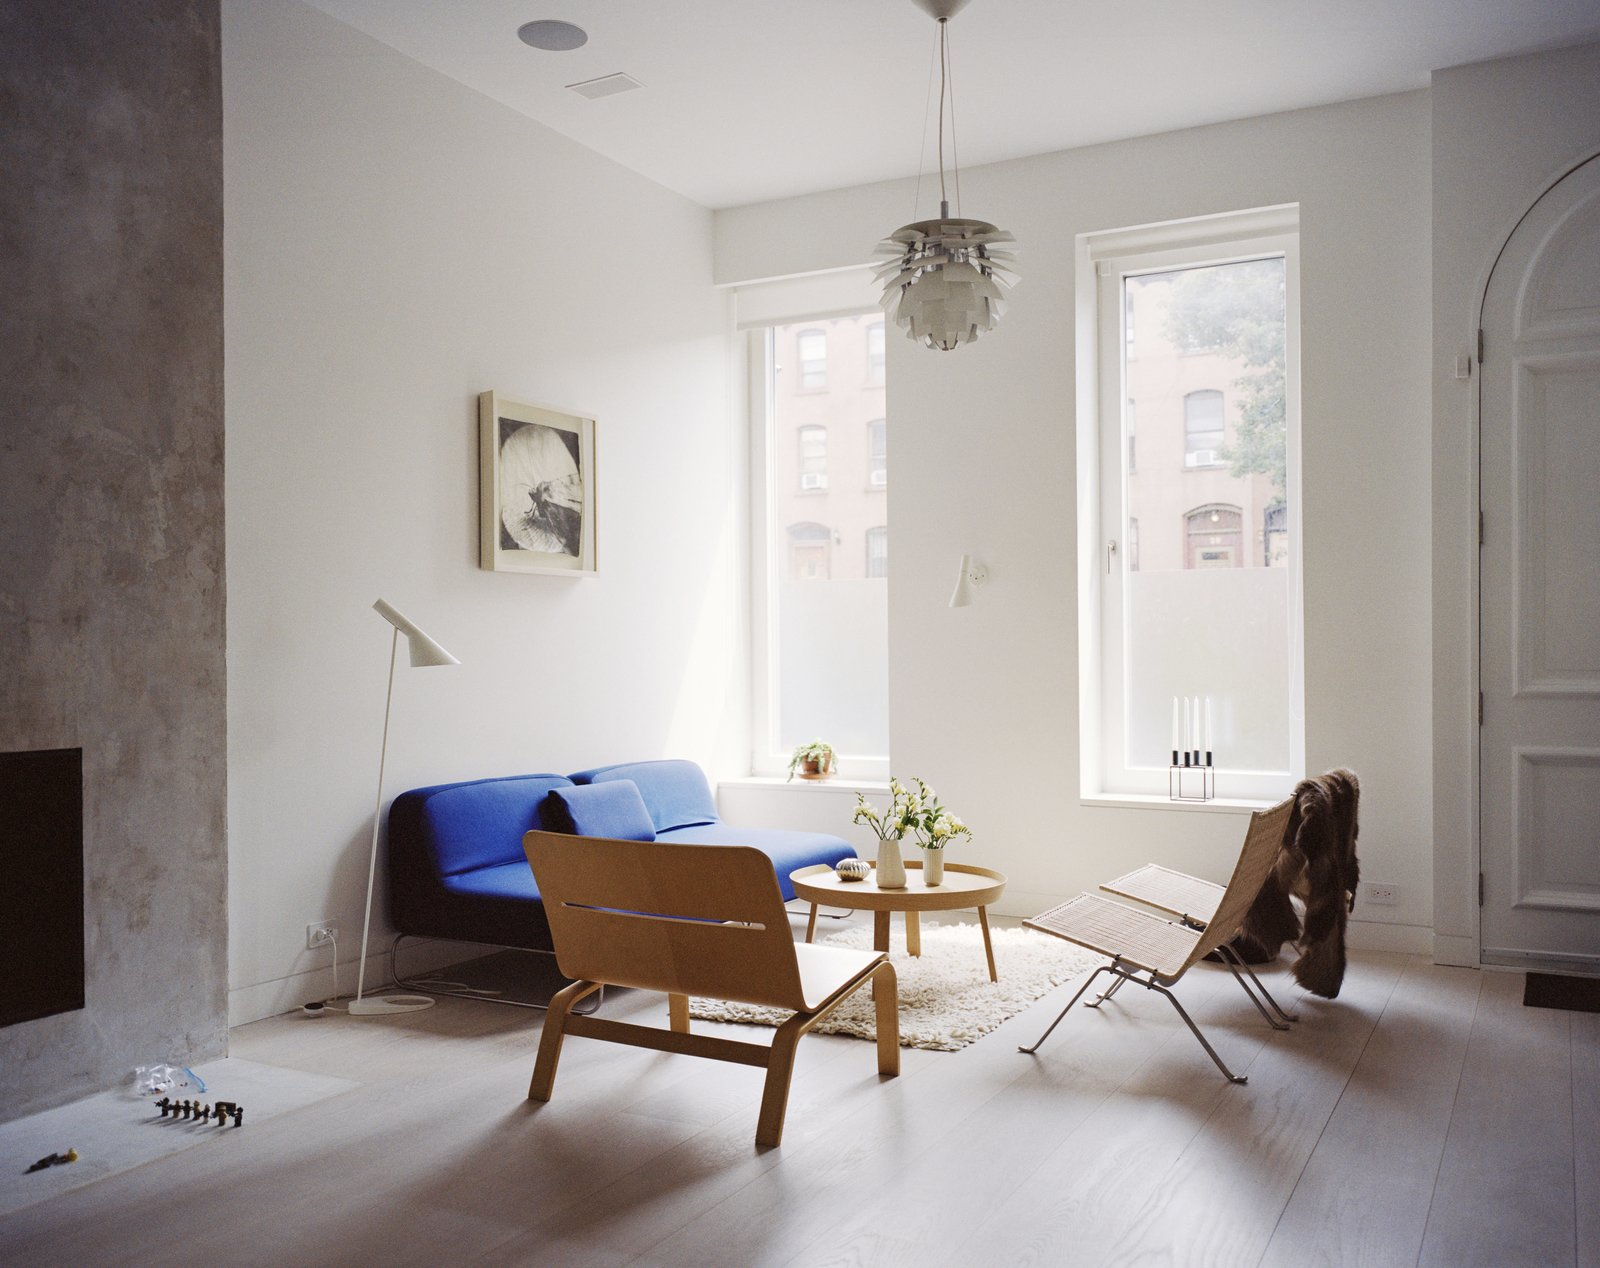 Living Room, Ceiling Lighting, Chair, Pendant Lighting, Sofa, Coffee Tables, Light Hardwood Floor, and Standard Layout Fireplace  Photo 1 of 10 in Our Scandinavian Style Dreams Come True in This Brooklyn Town House